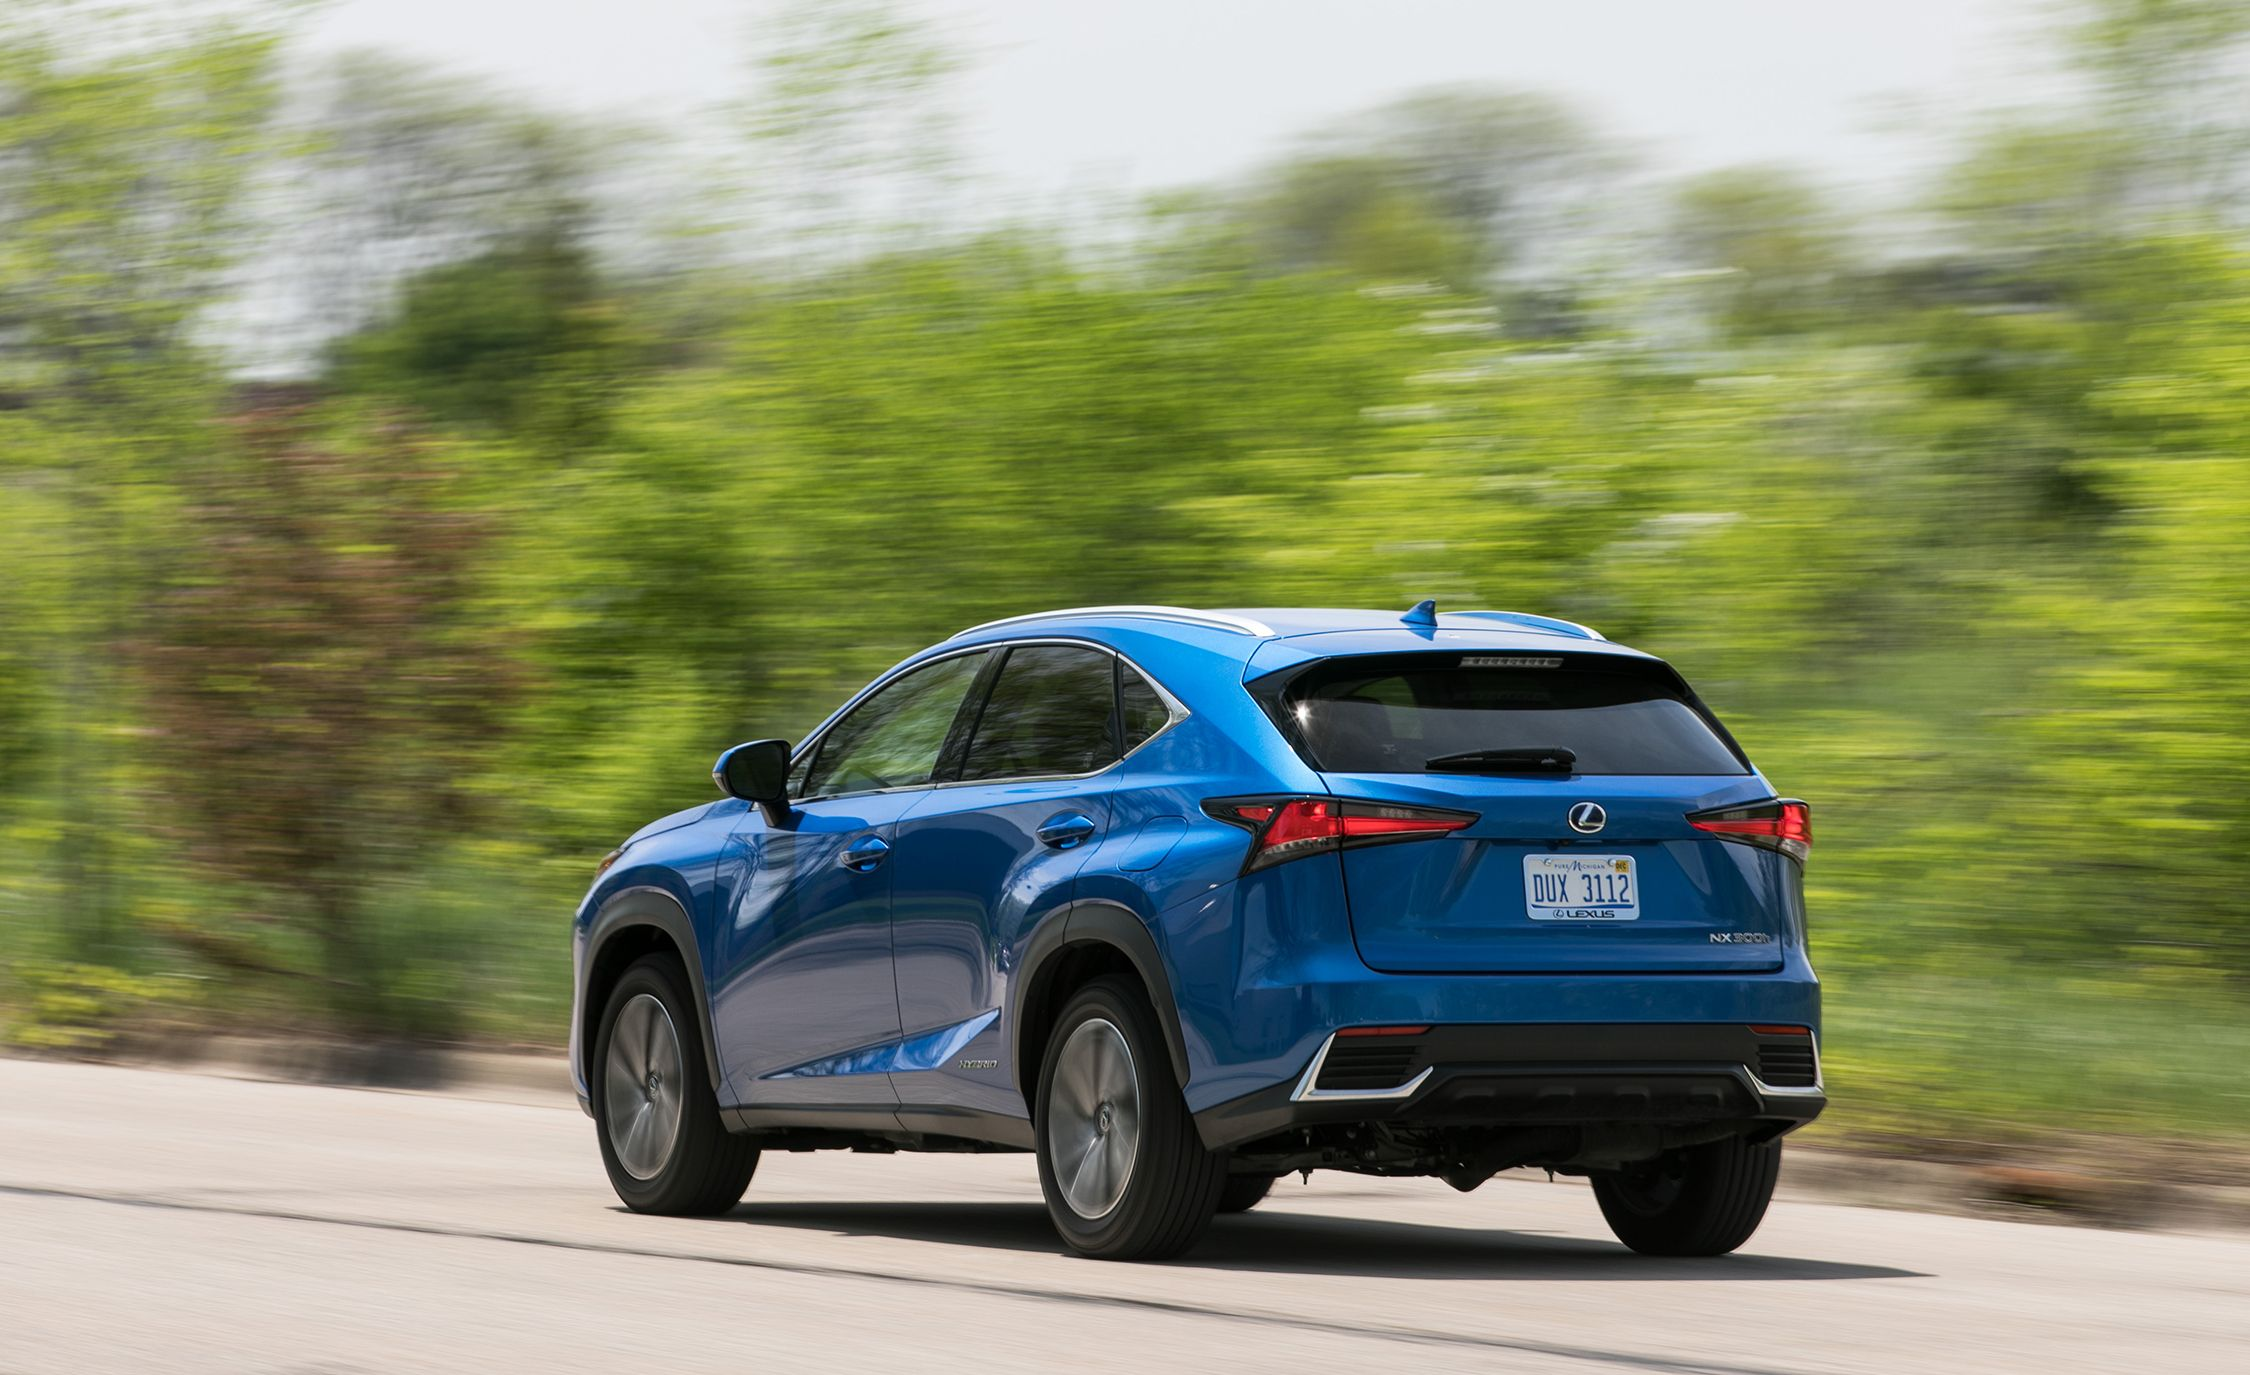 Bmw Cpo Warranty >> 2018 Lexus NX | Warranty and Maintenance Coverage Review | Car and Driver